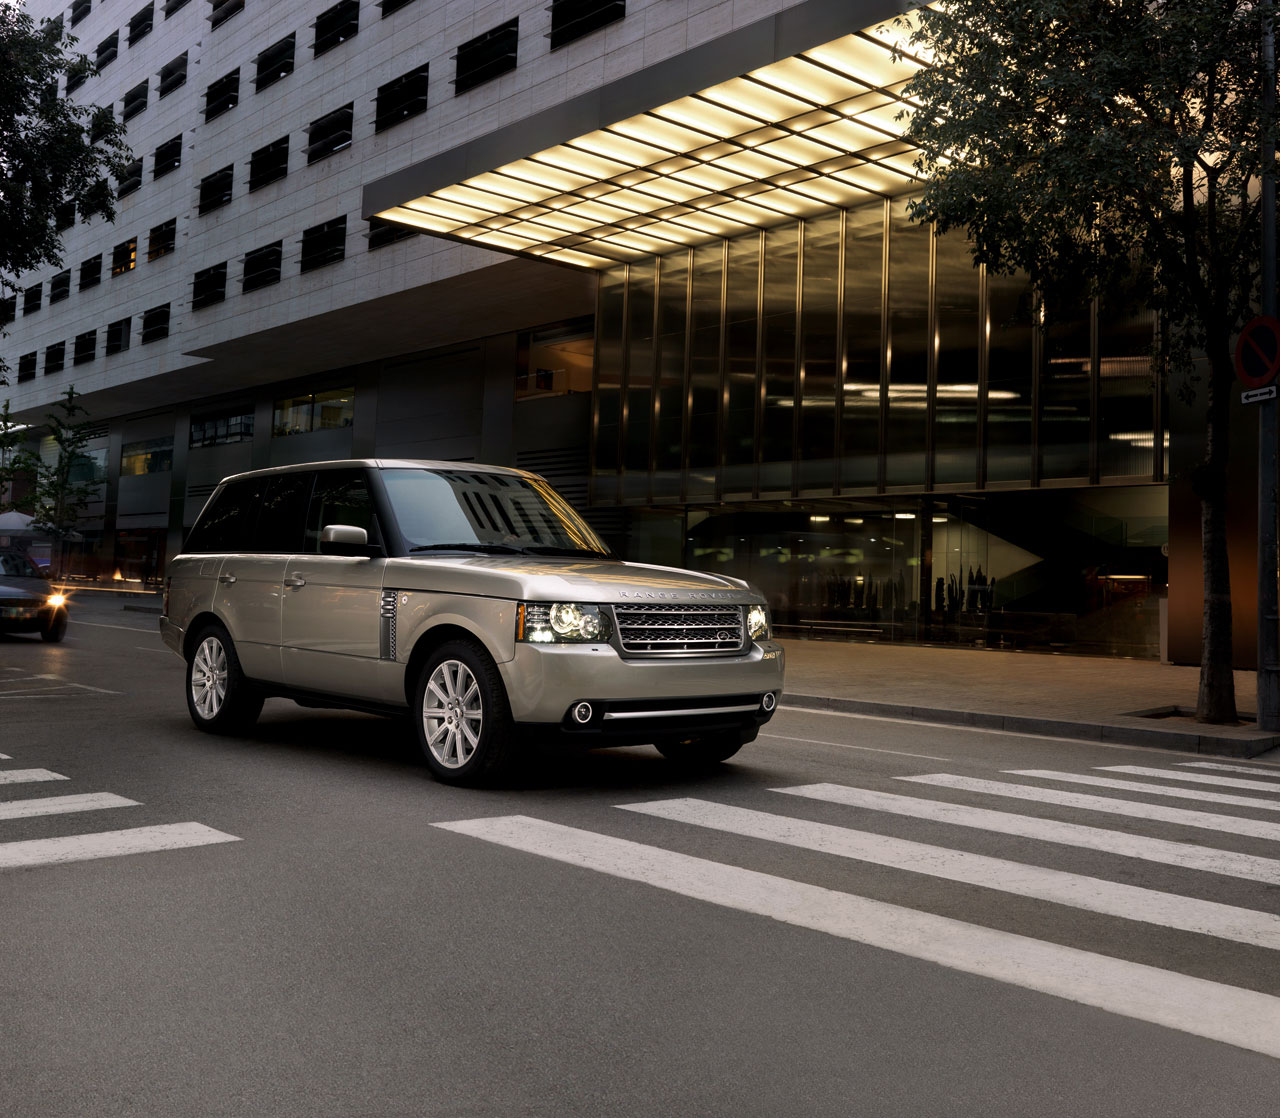 ���� 2010 ������� 01-2010-range-rover-press.jpg